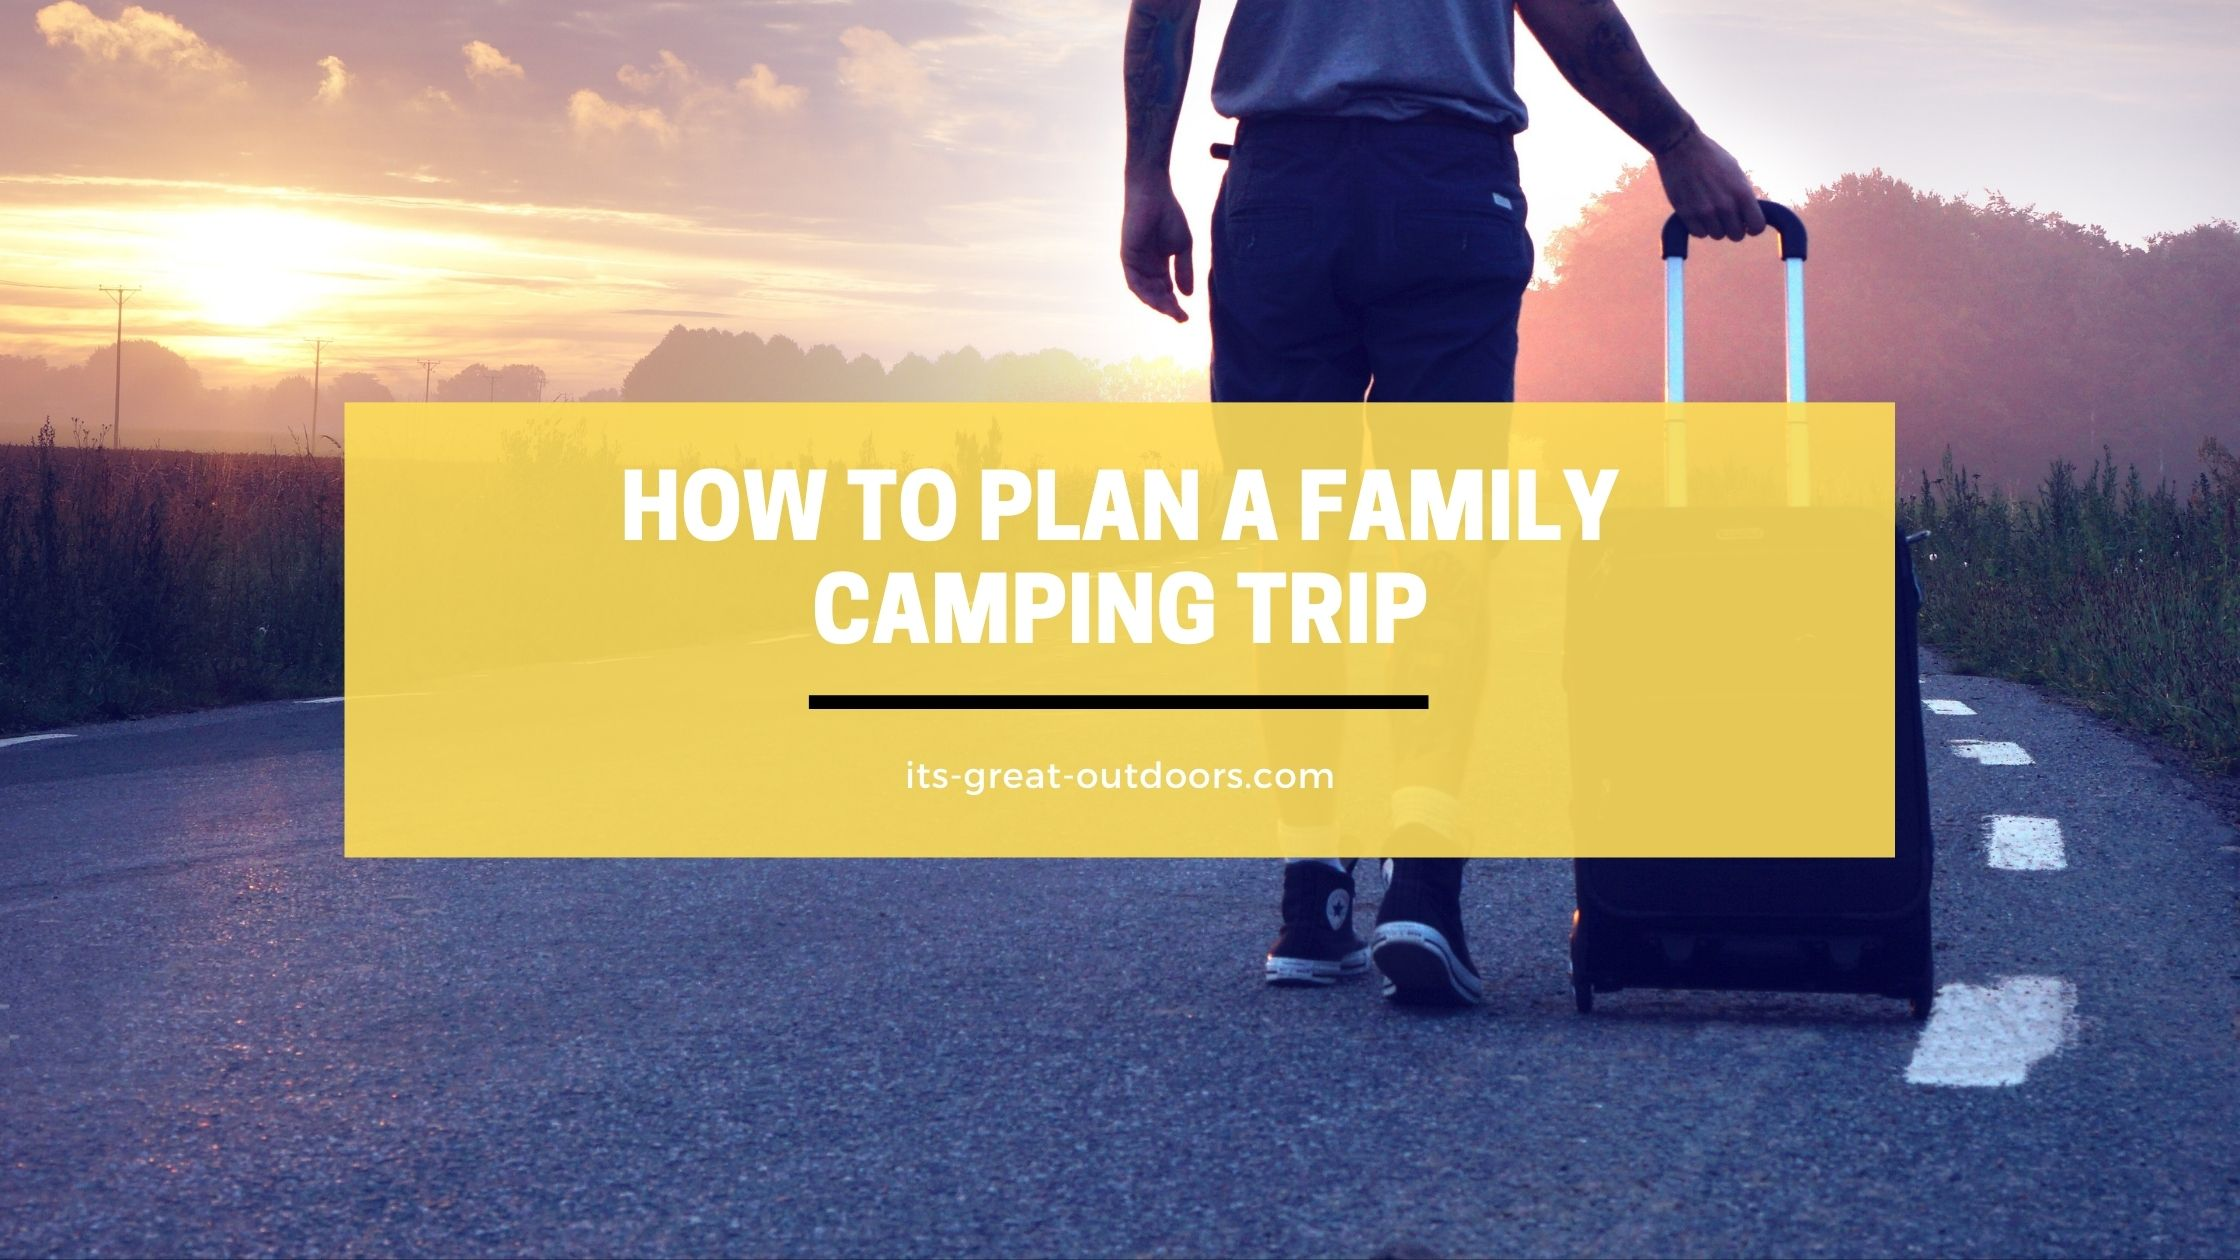 How to Plan A Family Camping Trip